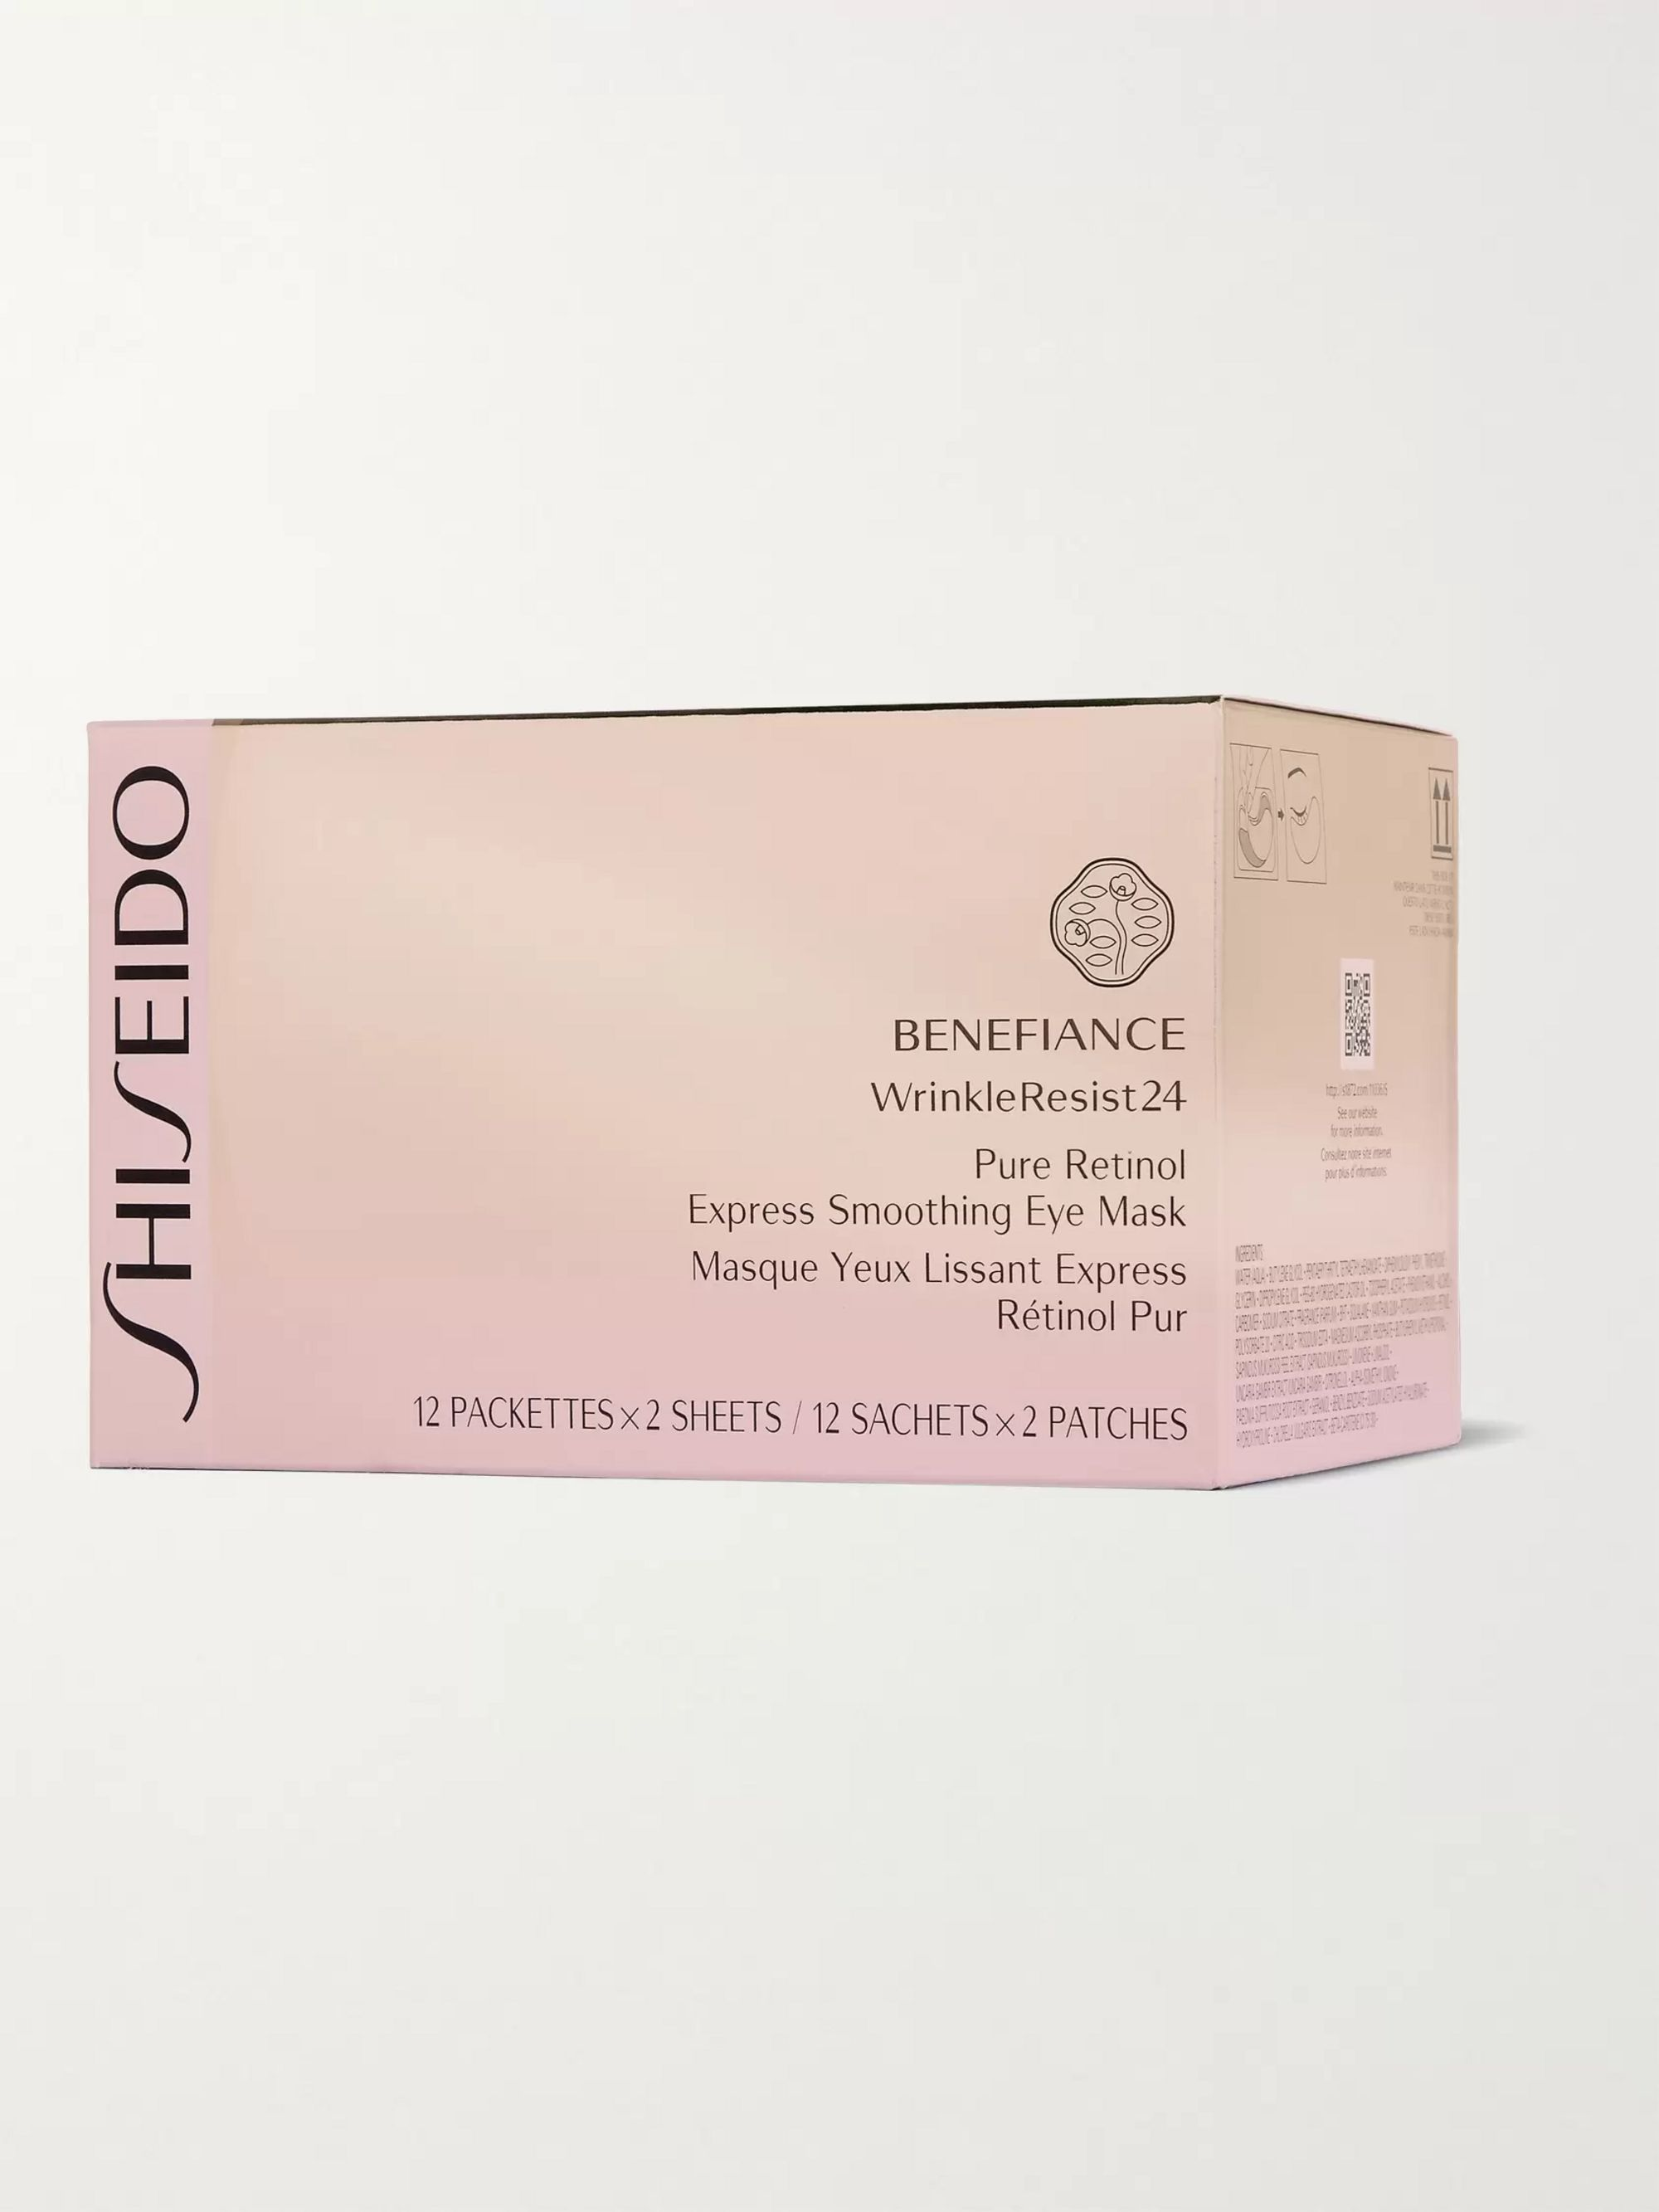 Shiseido Benefiance WrinkleResist24 Pure Retinol Express Smoothing Eye Mask x 12